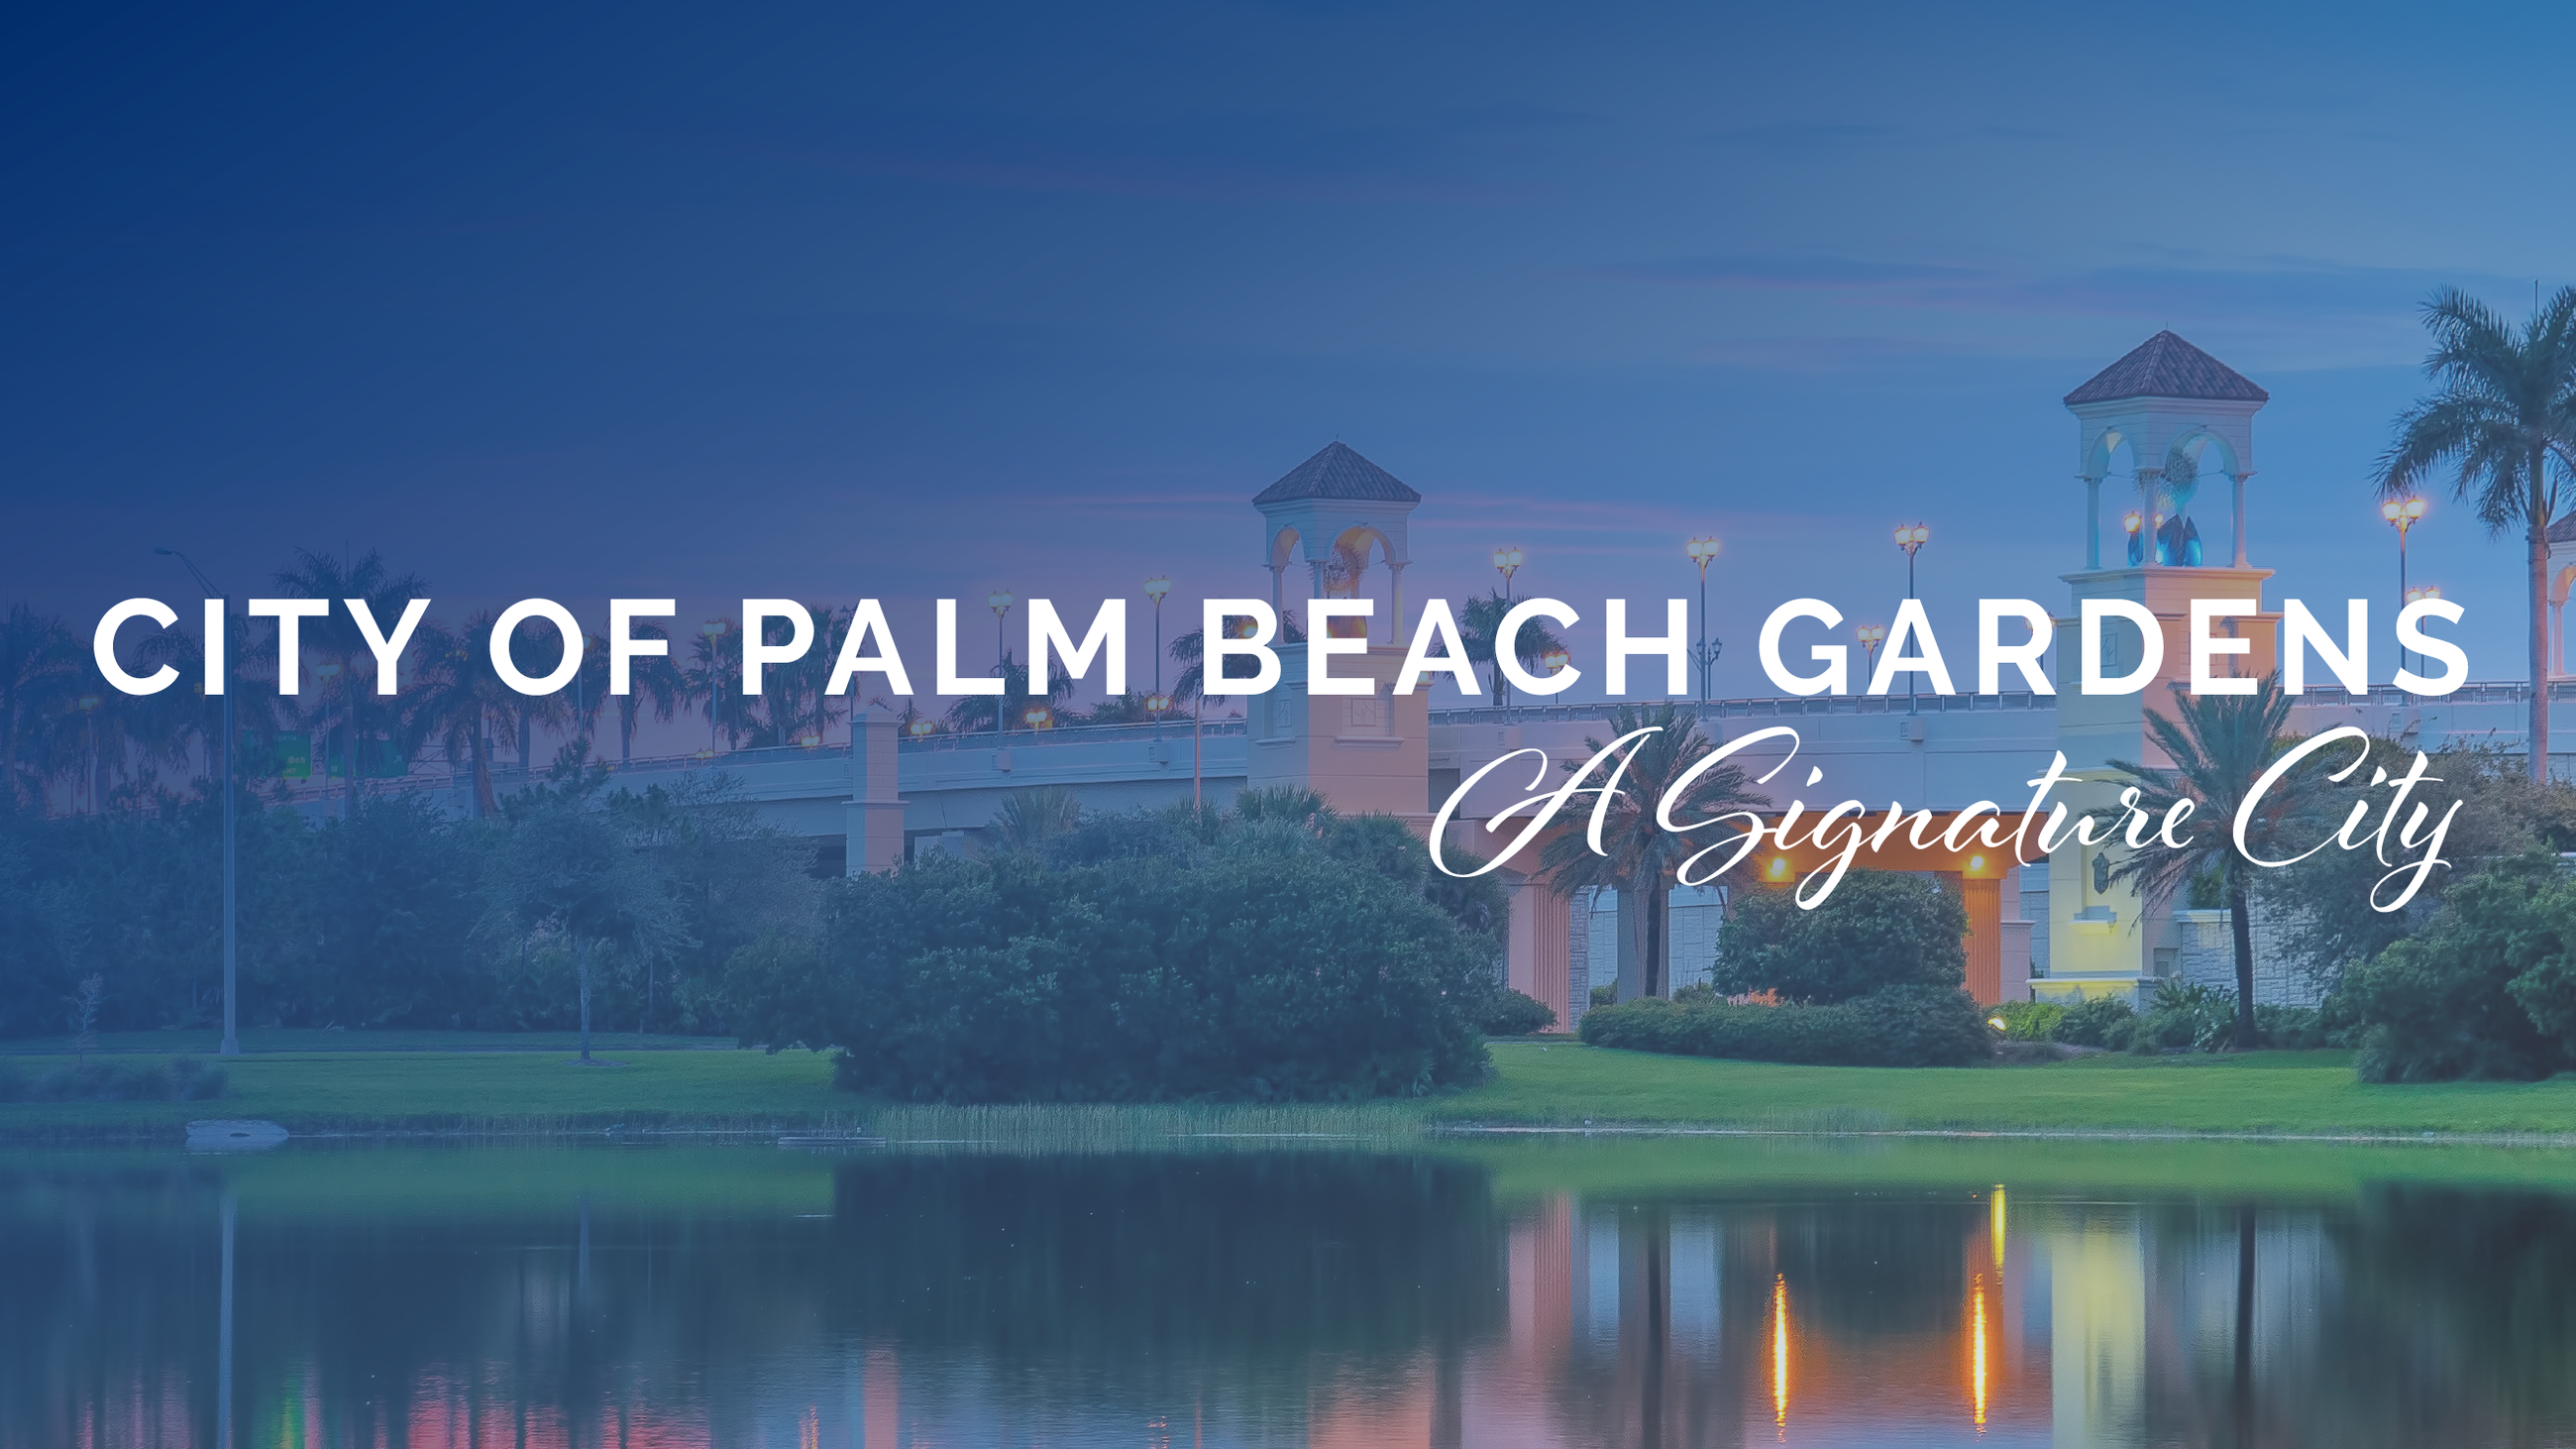 City of Palm Beach Gardens A Signature City